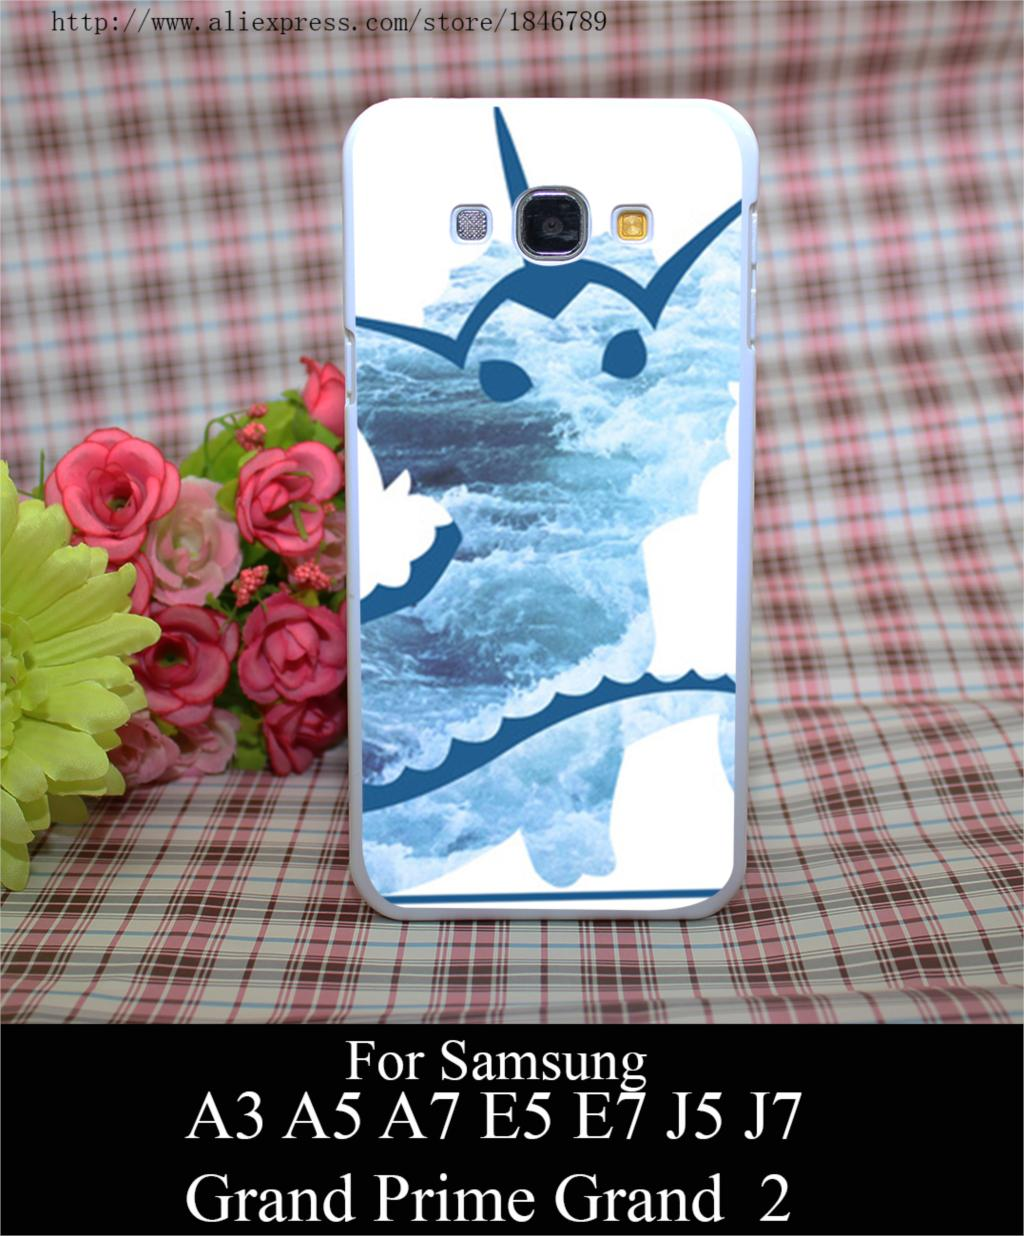 vaporeon p waves Style White Hard Case Cover for Samsung A3 A5 A7 A8 E5 E7 J5 J7 Grand Prime 2 G530(China (Mainland))